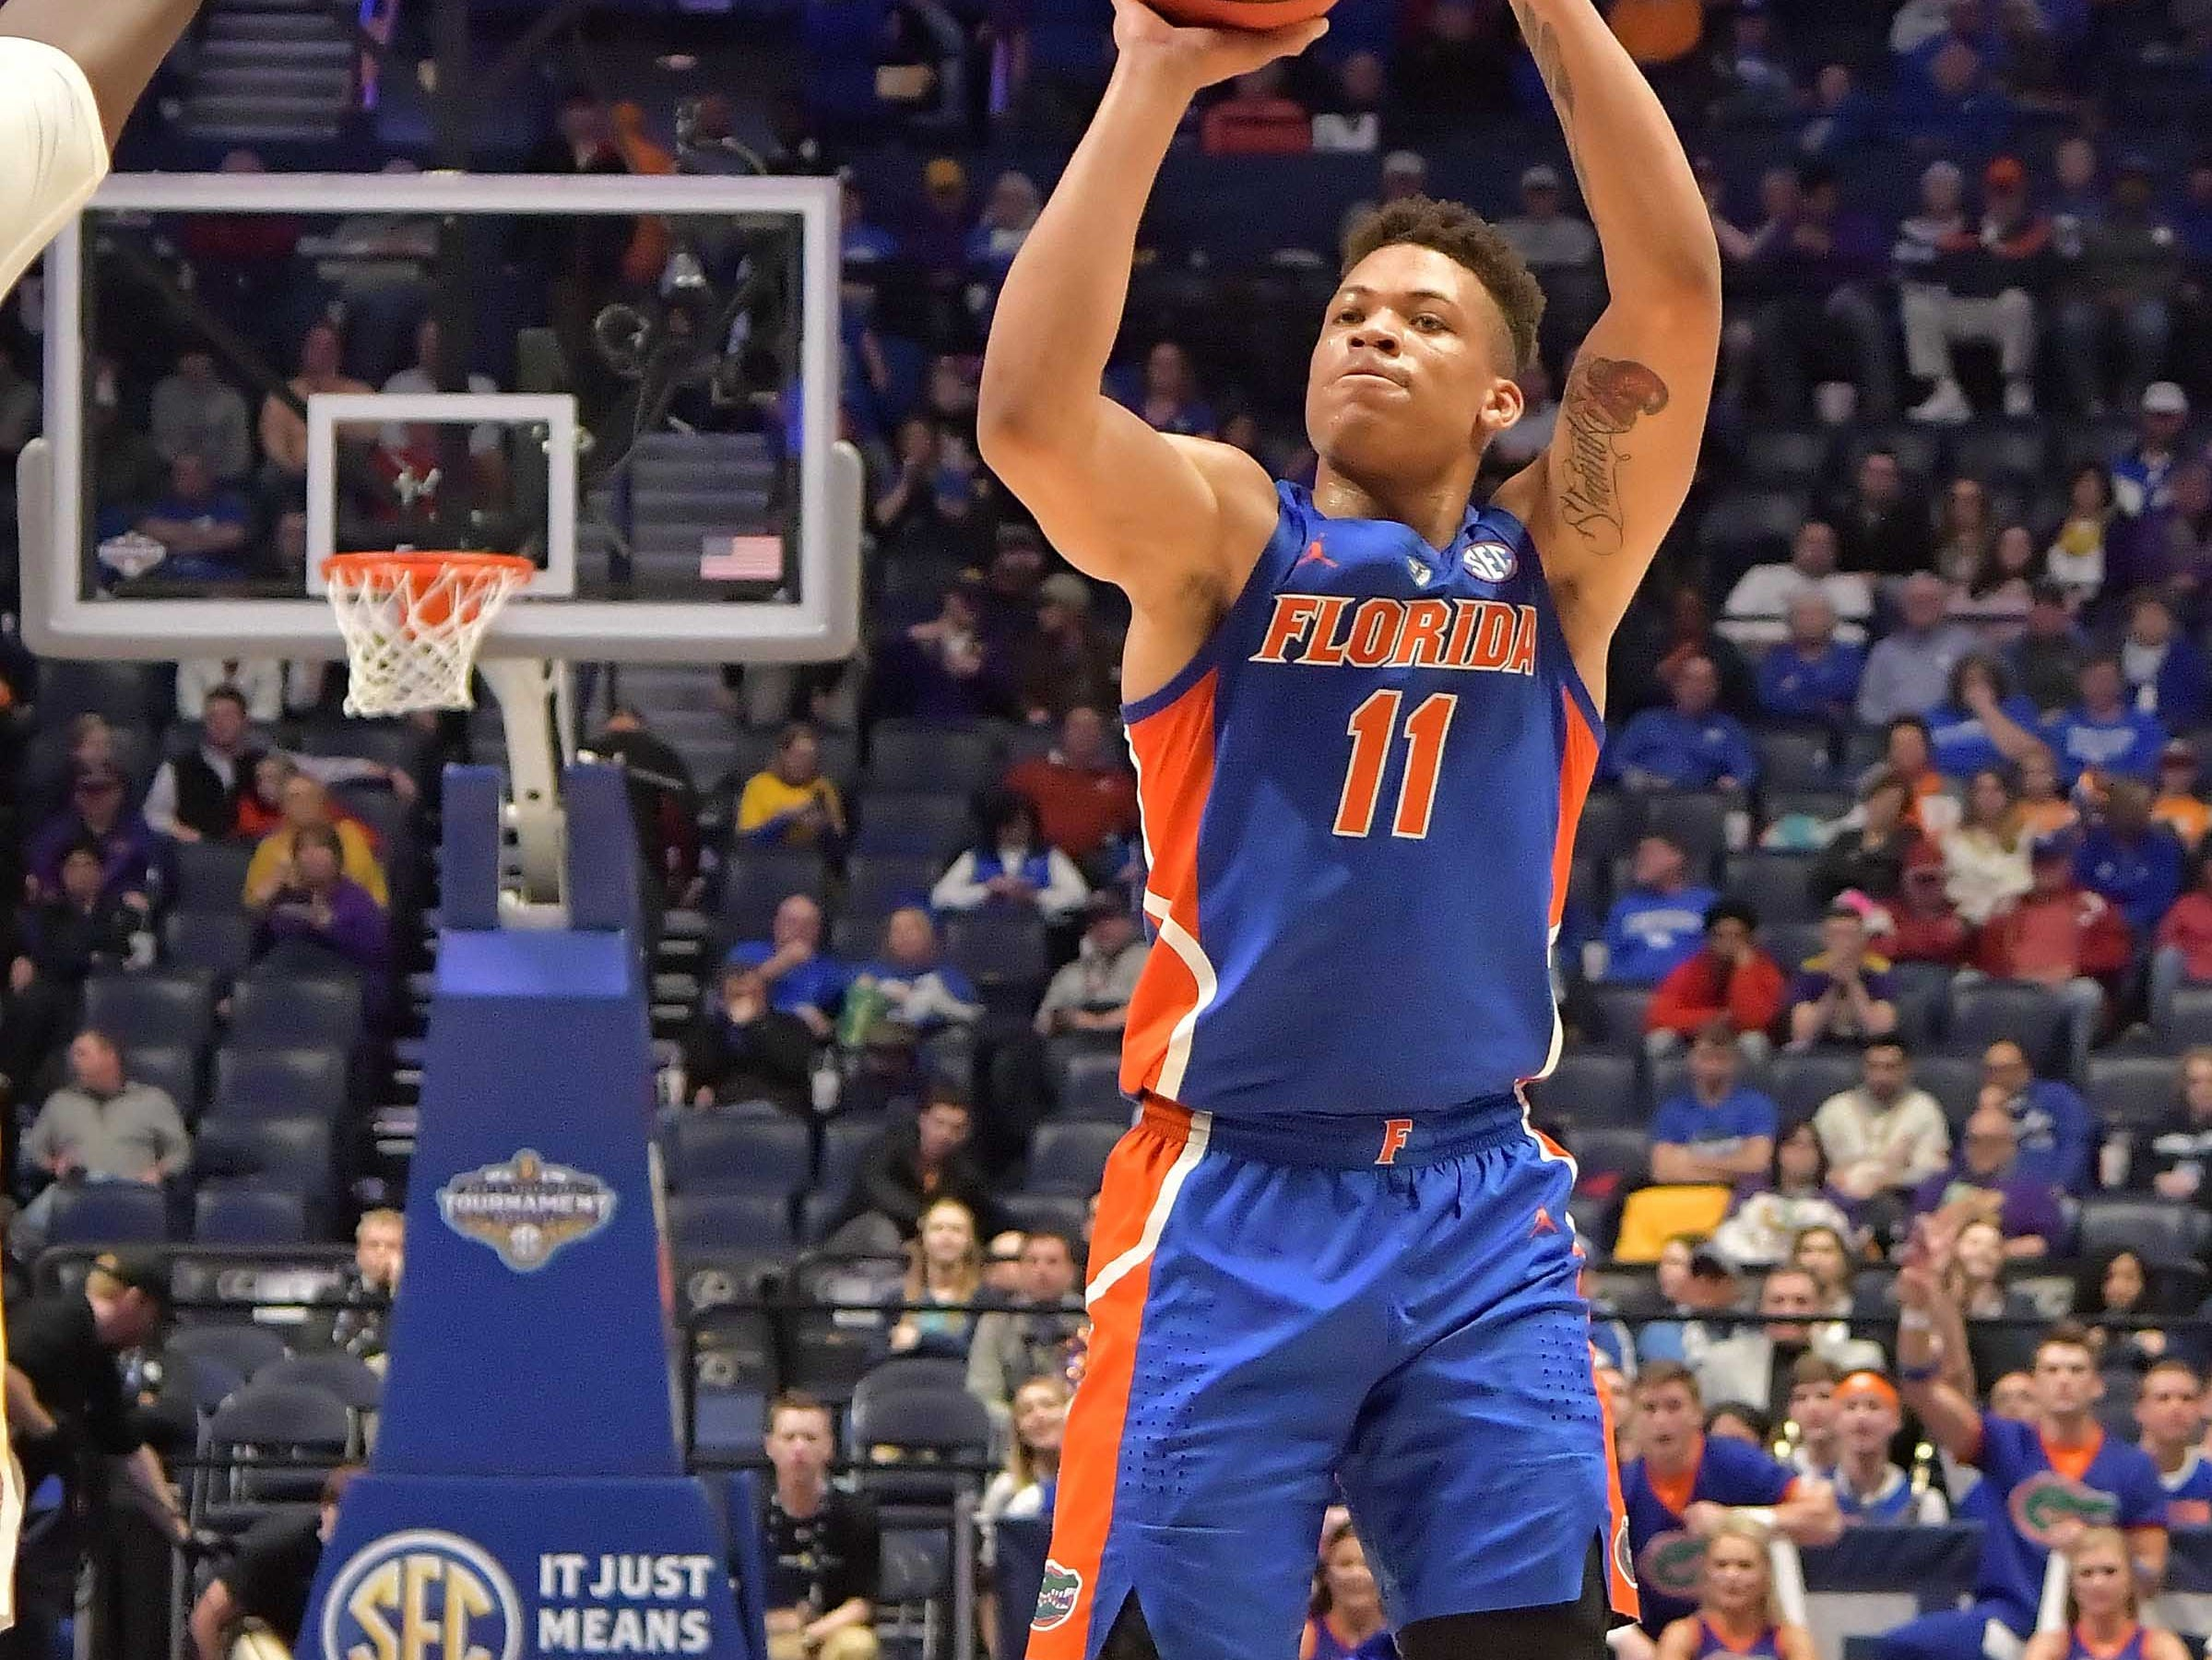 Mar 15, 2019; Nashville, TN, USA; Florida Gators forward Keyontae Johnson (11) shoots against the LSU Tigers during the first half of game seven in the SEC conference tournament at Bridgestone Arena. Mandatory Credit: Jim Brown-USA TODAY Sports